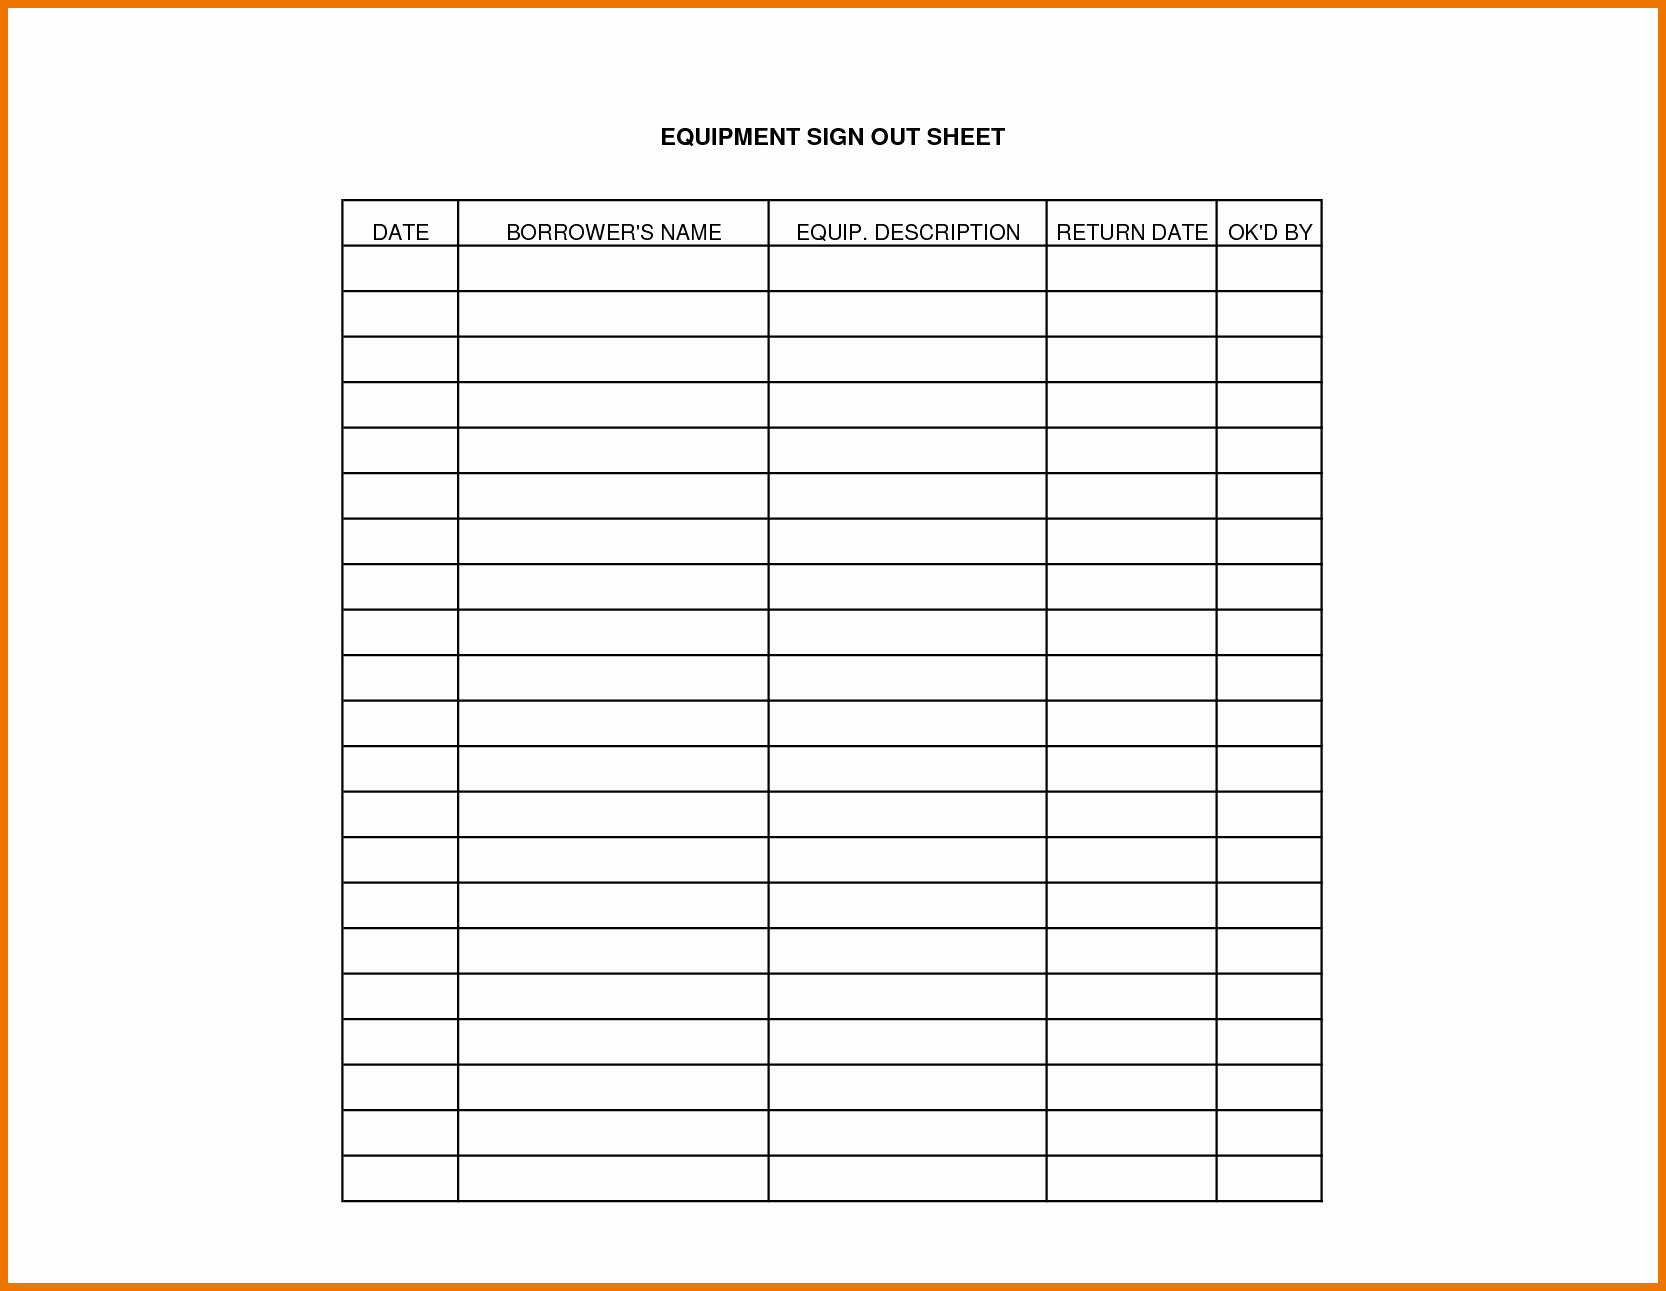 Key Sign Out Sheet Beautiful Equipment Sign Out Sheet Template